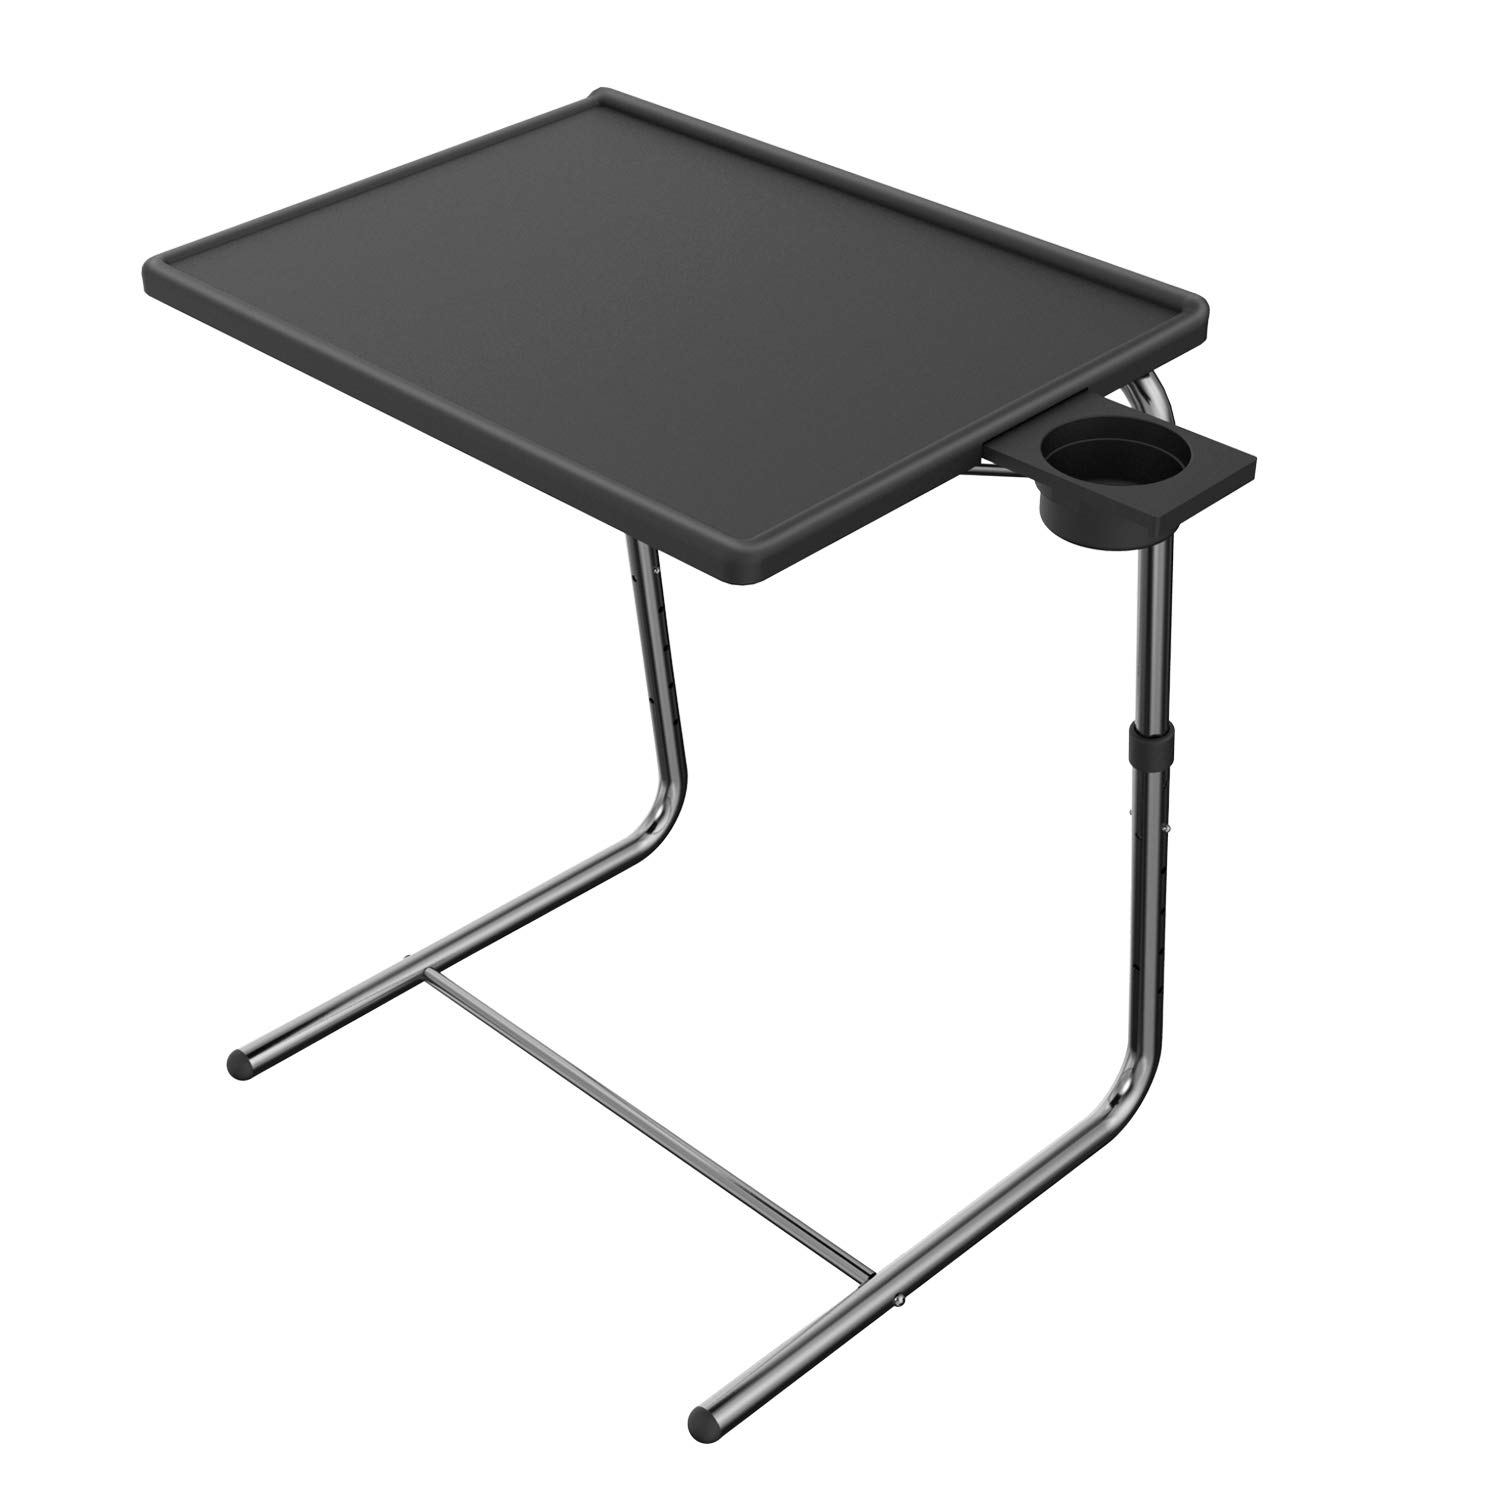 Adjustable TV Tray Table - TV Dinner Tray on Bed & Sofa, Comfortable Folding Table with 5 Height & 3 Tilt Angle Adjustments, Laptop Table with Built-in Cup Holder (1 Pack, Black)